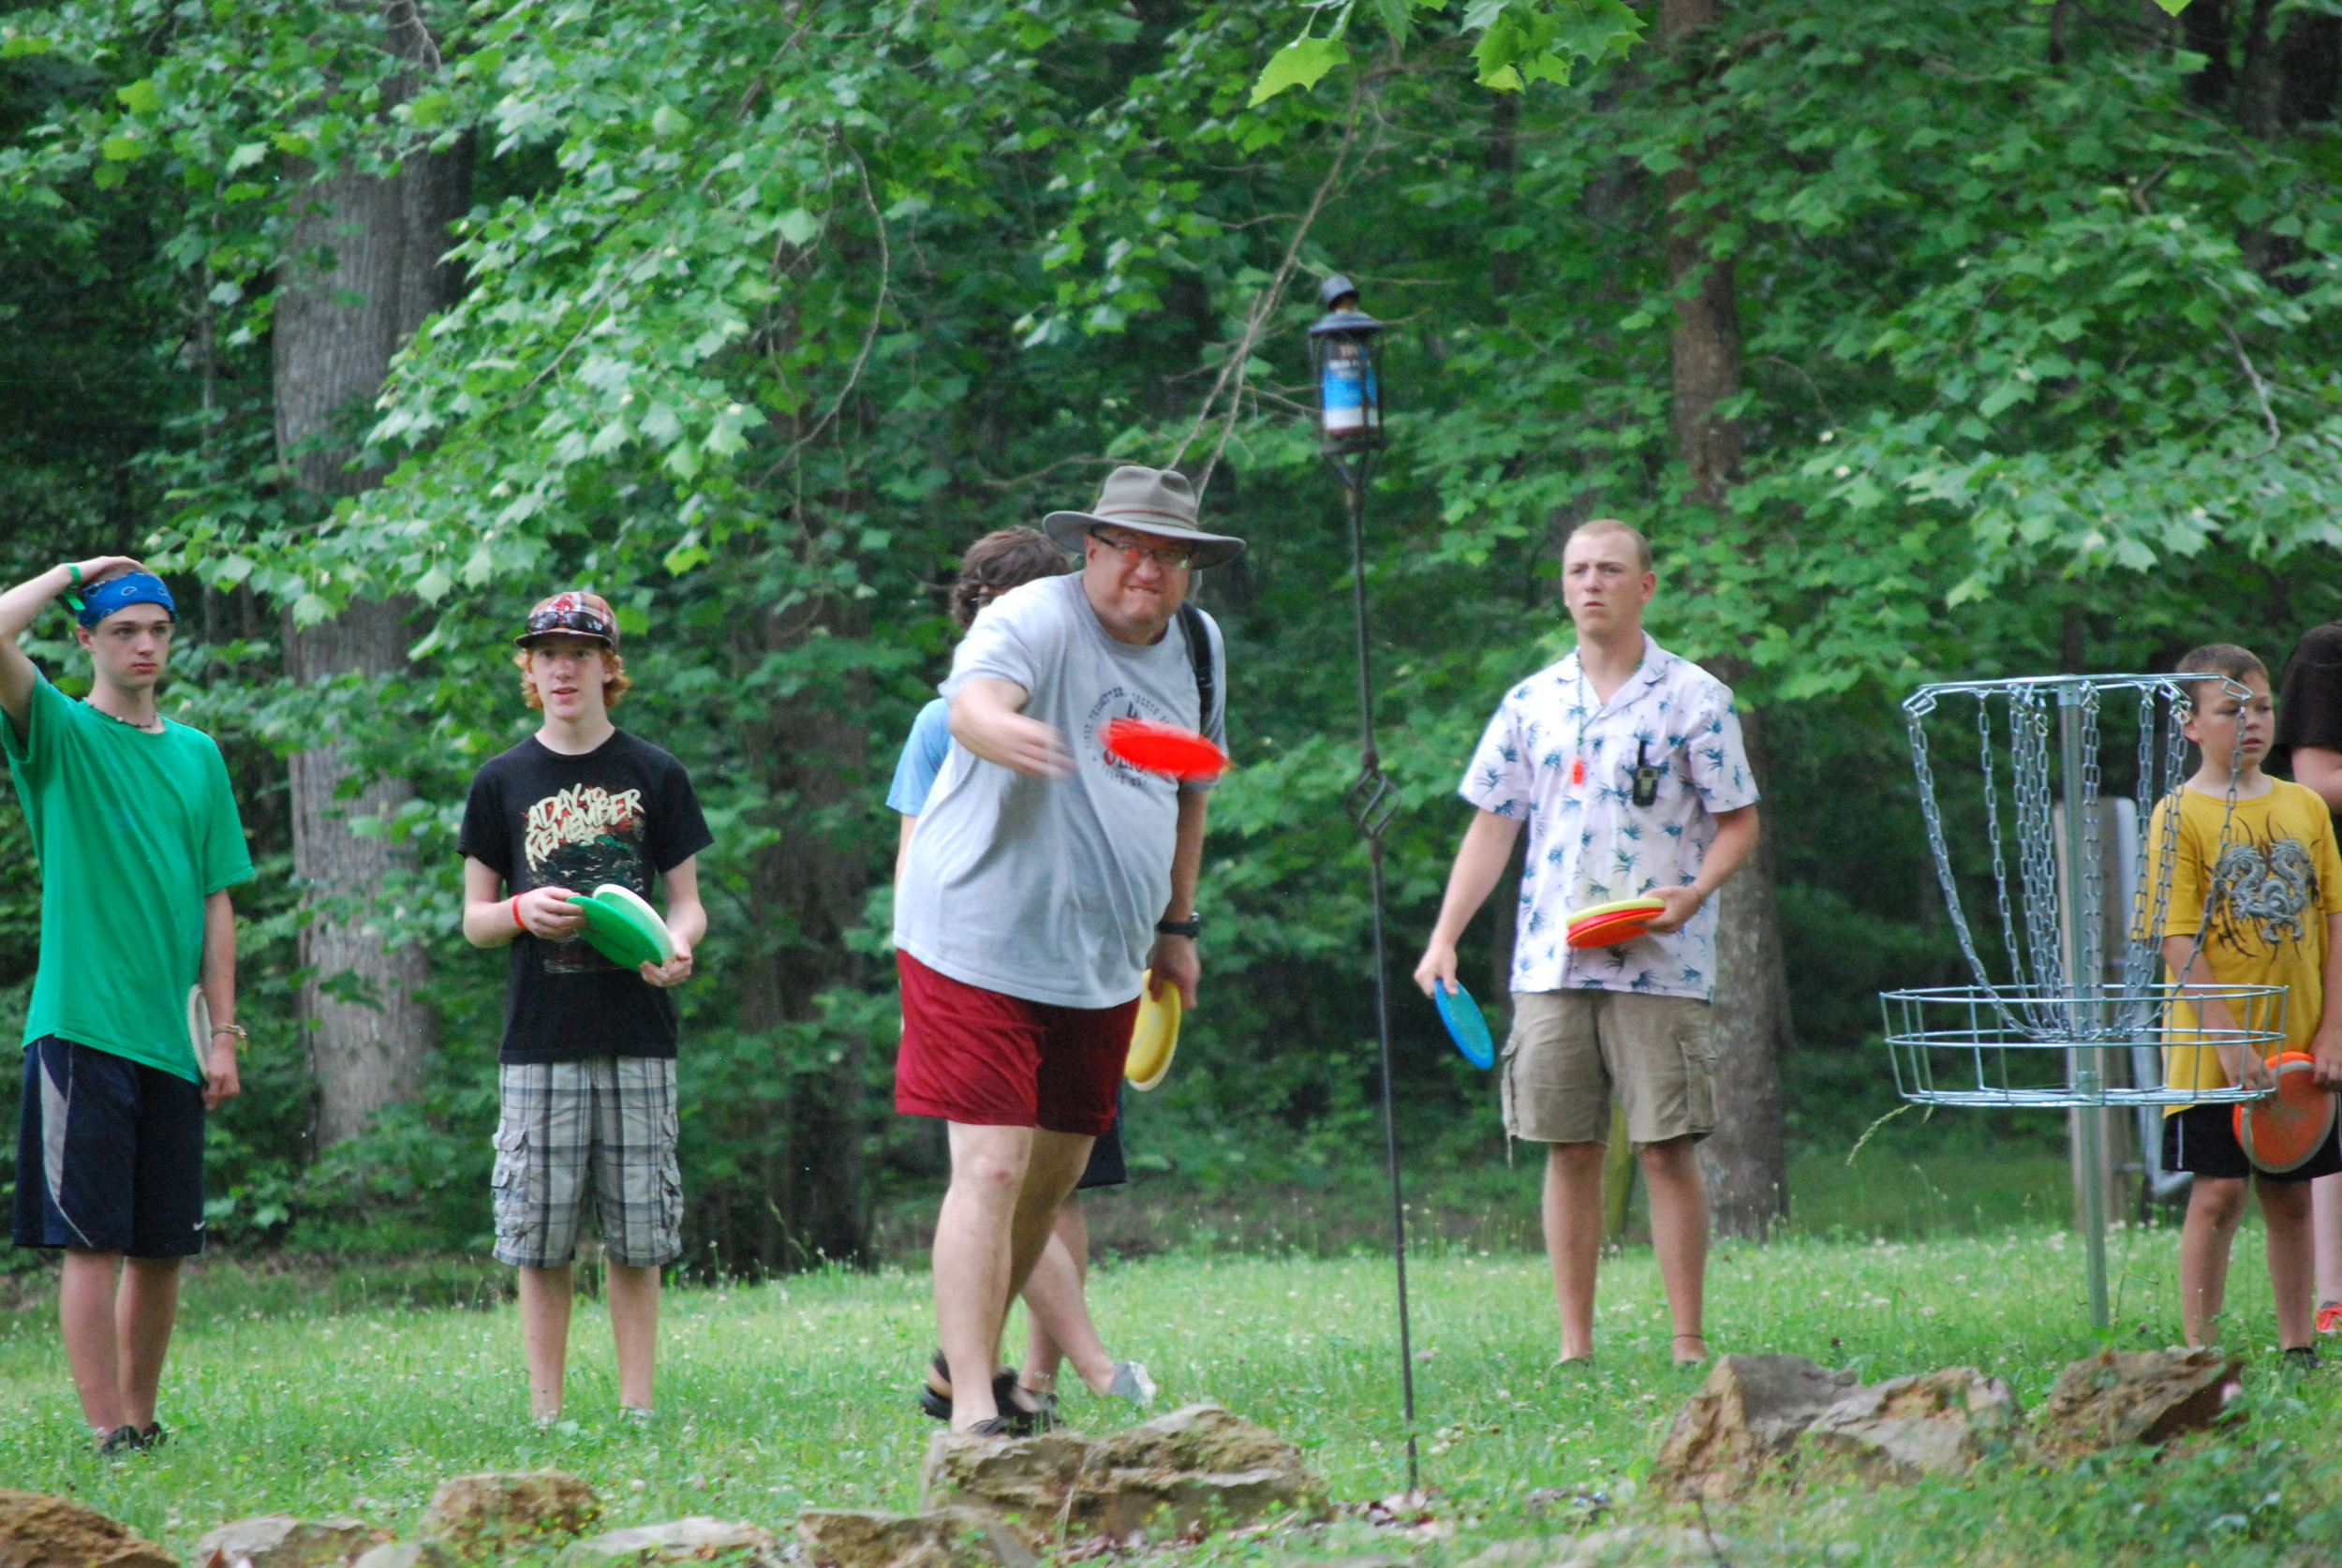 Intergenerational activities, horse shoes at NaCoMe Camp & Conference Center